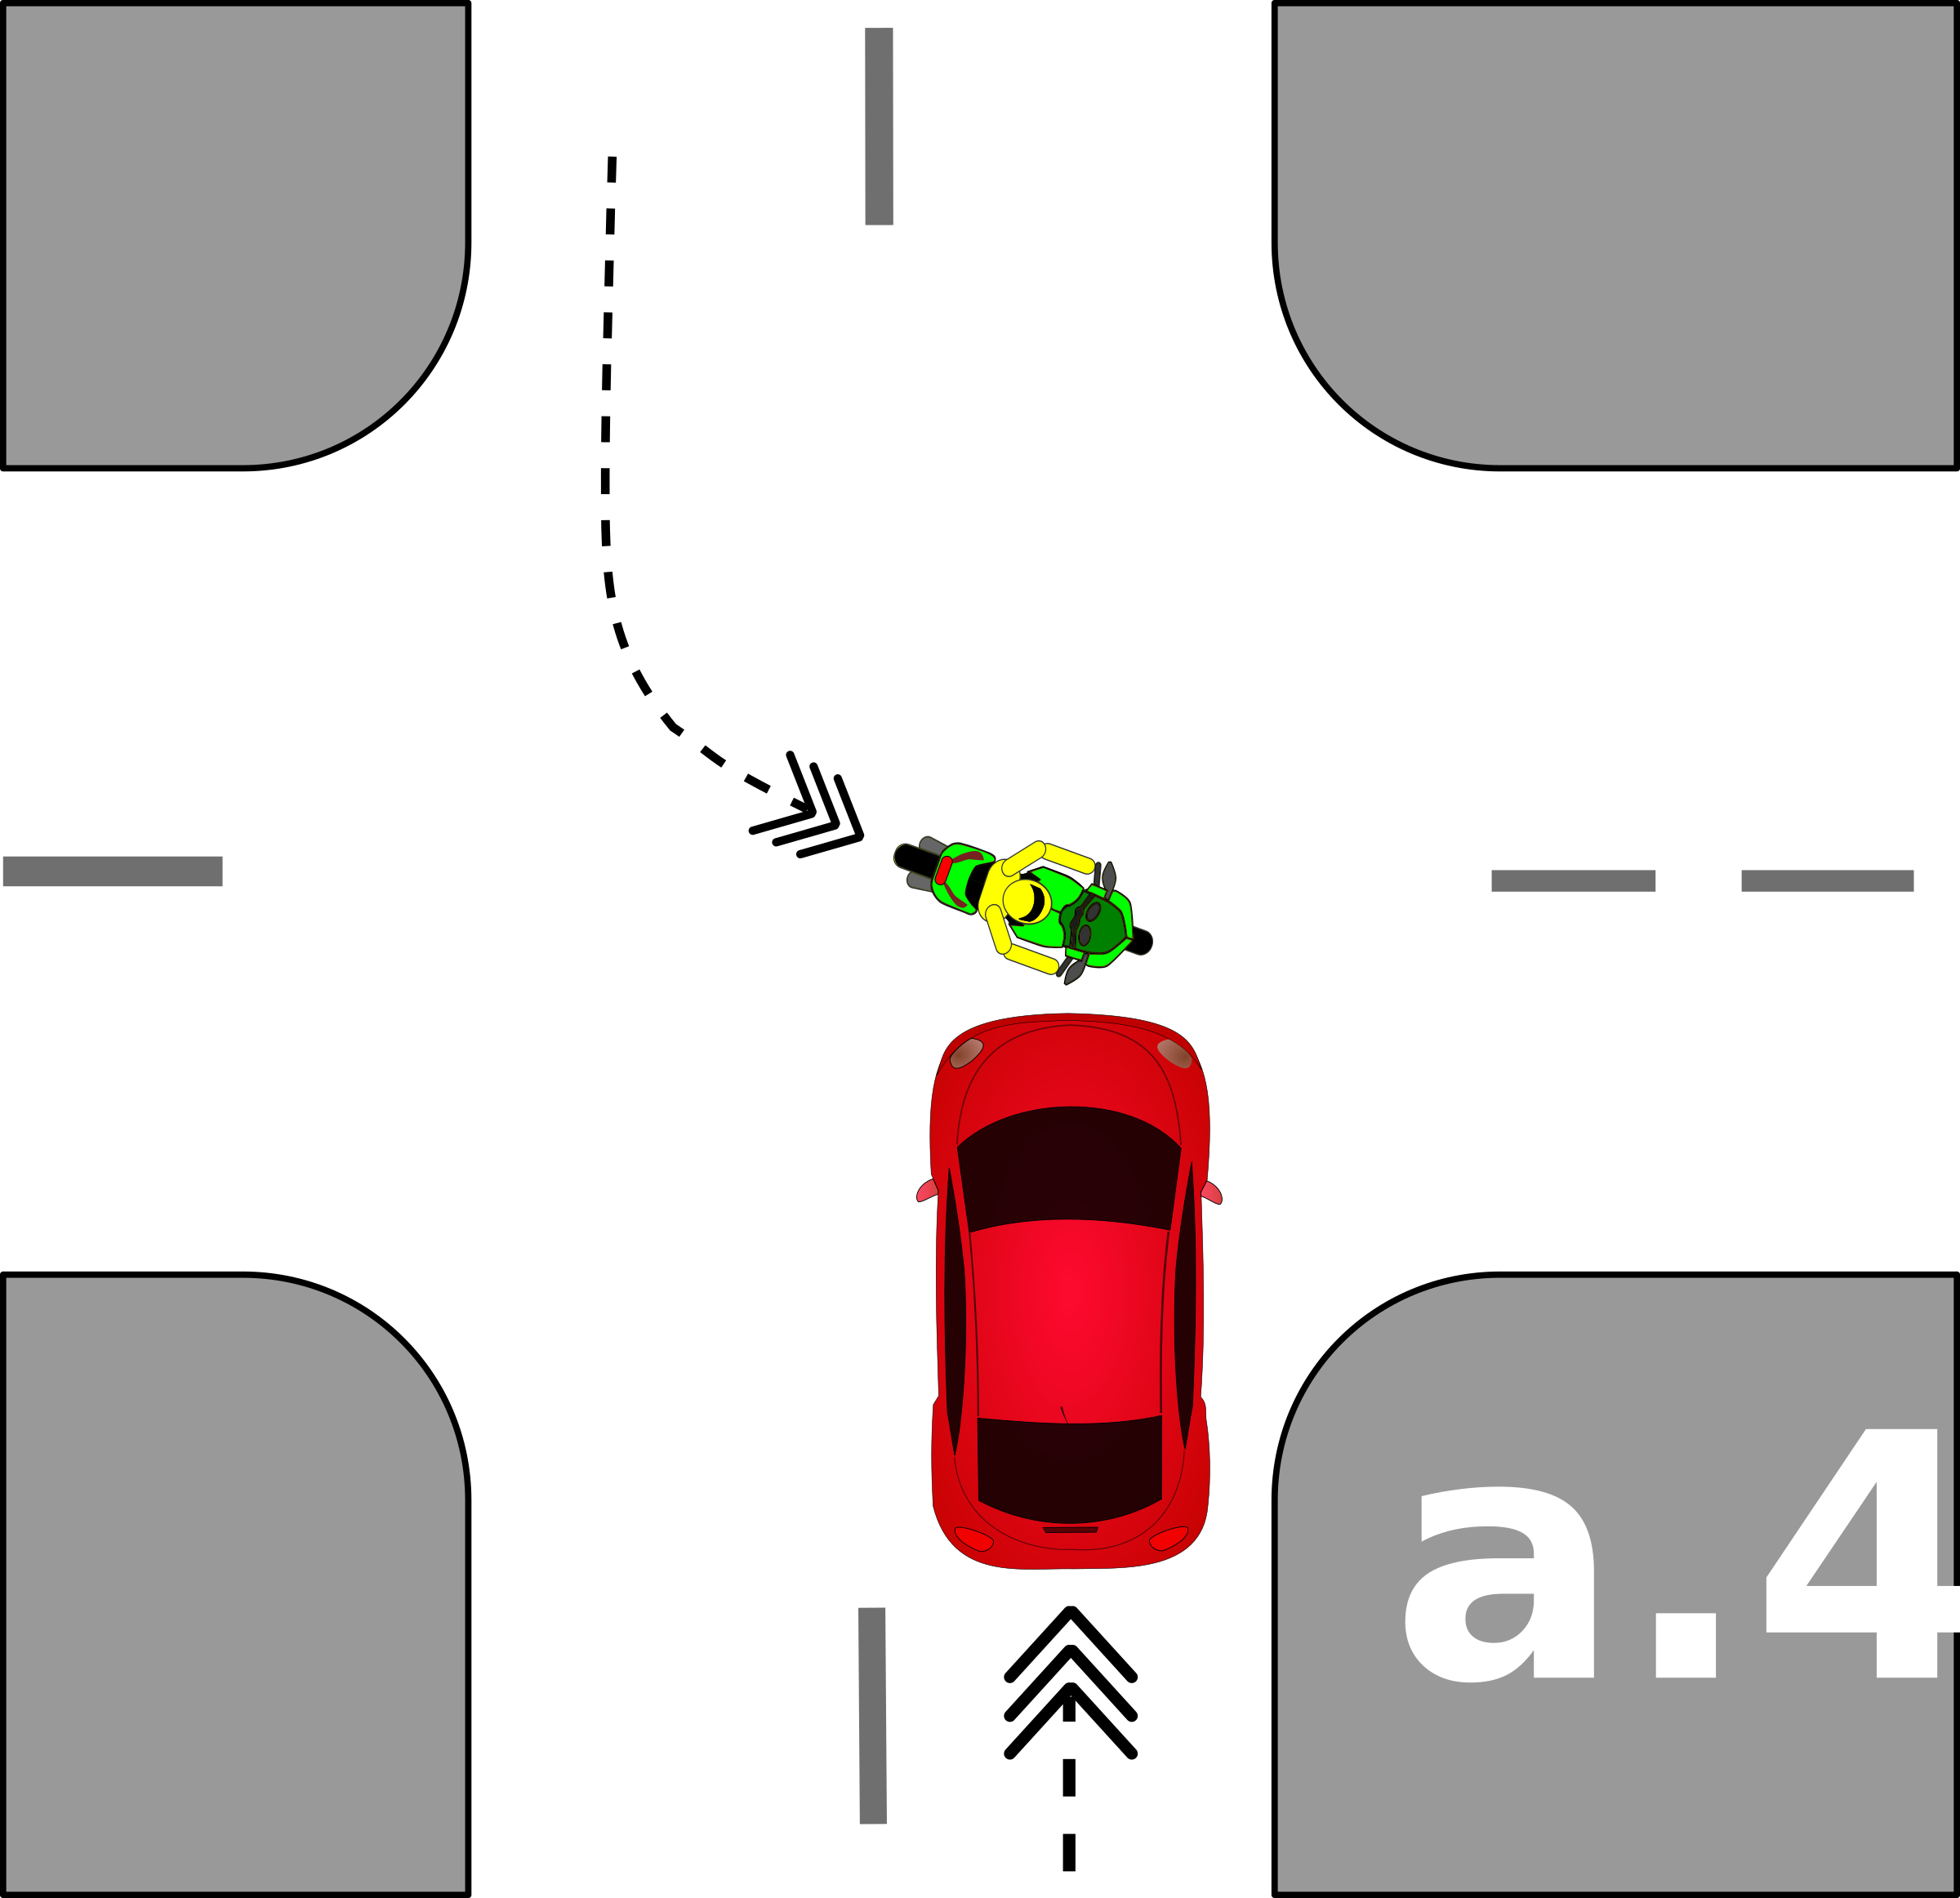 traffic accident pictograms a.4 by Gusta